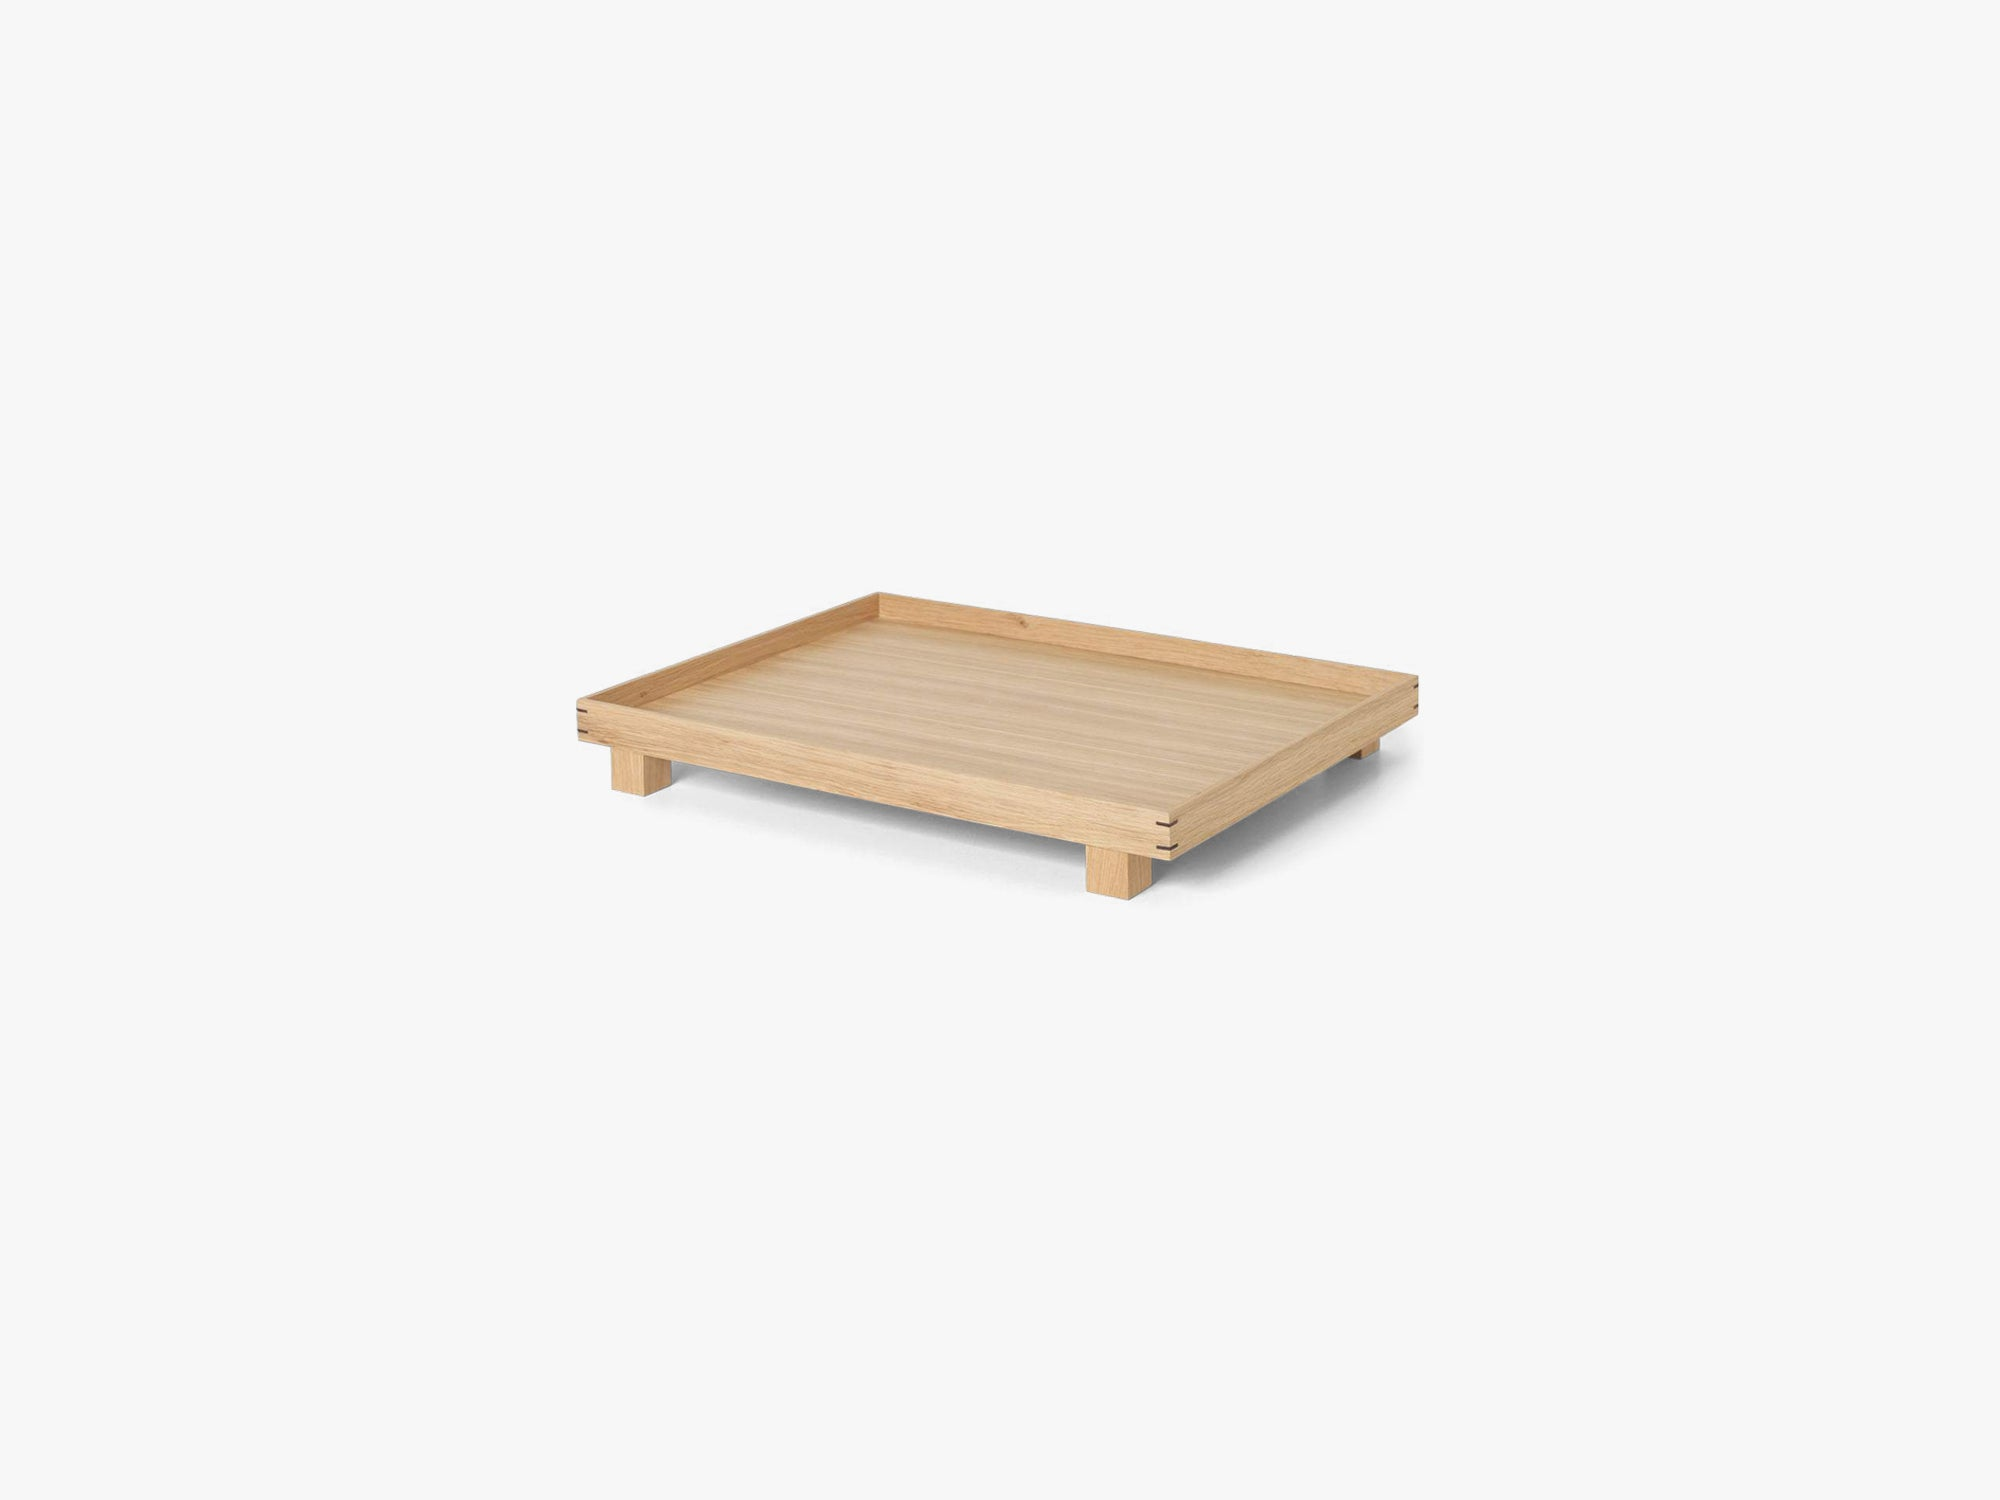 Bon Wooden Tray Small, Oak fra Ferm Living